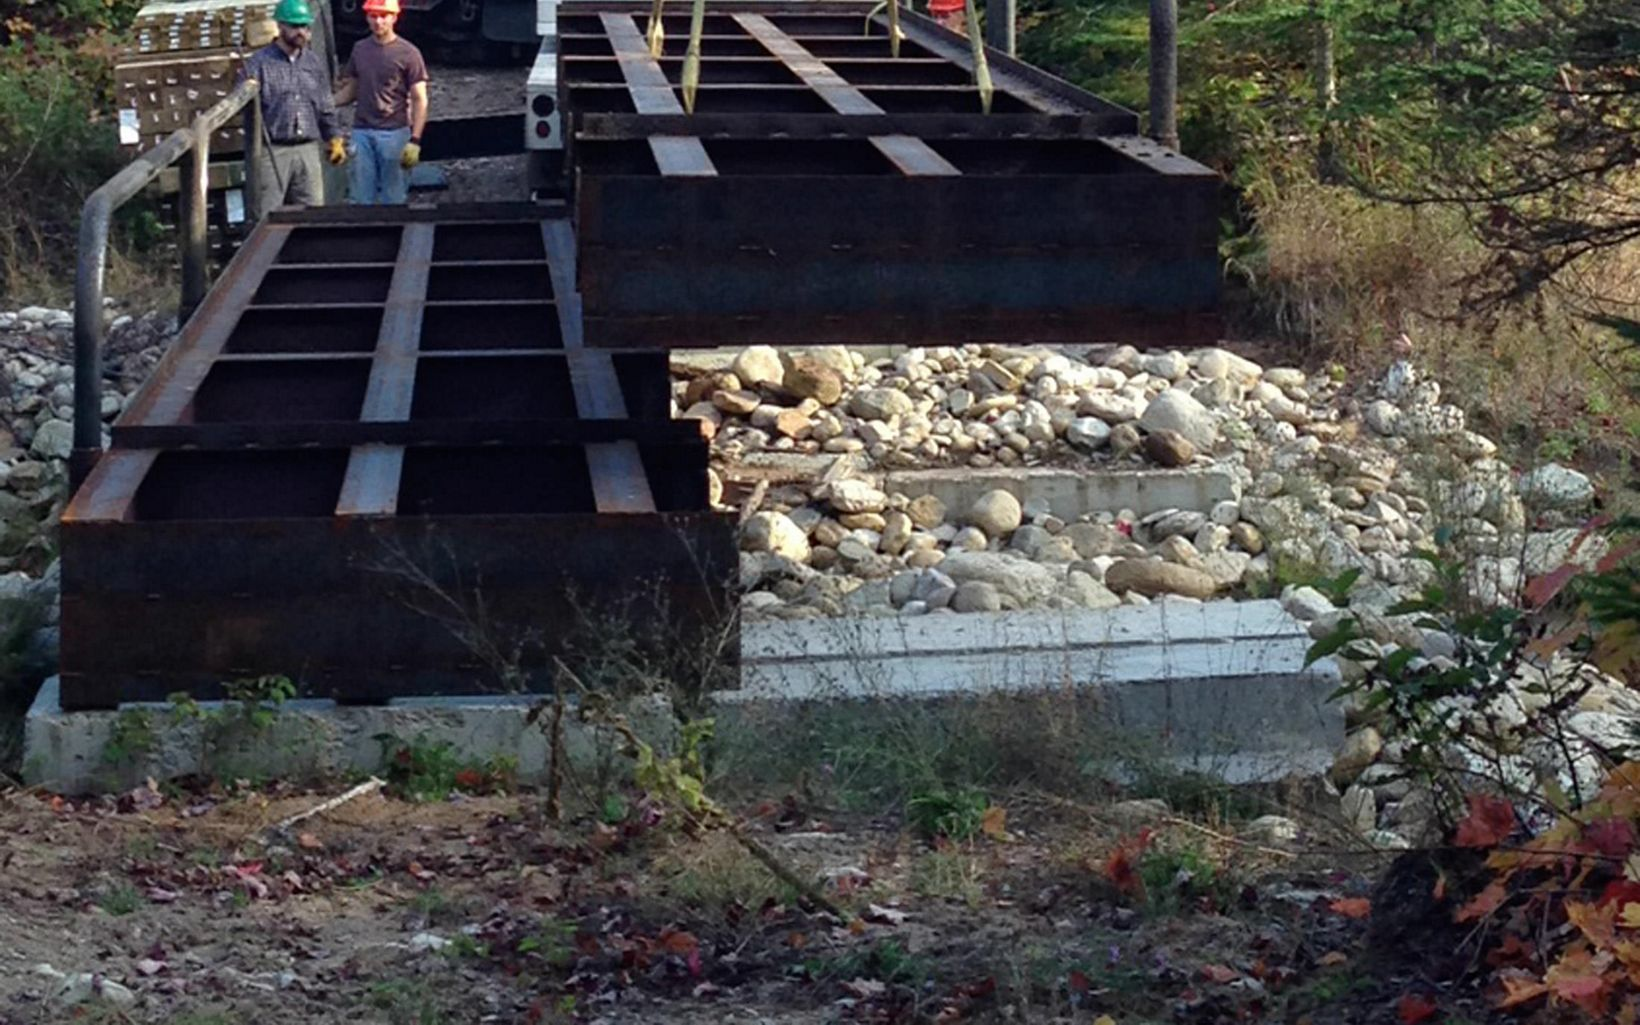 A portable bridge can be used at multiple sites in the Two Hearted River Watershed where logging trucks need to pass, but still allowing open flow of water for fish passage.